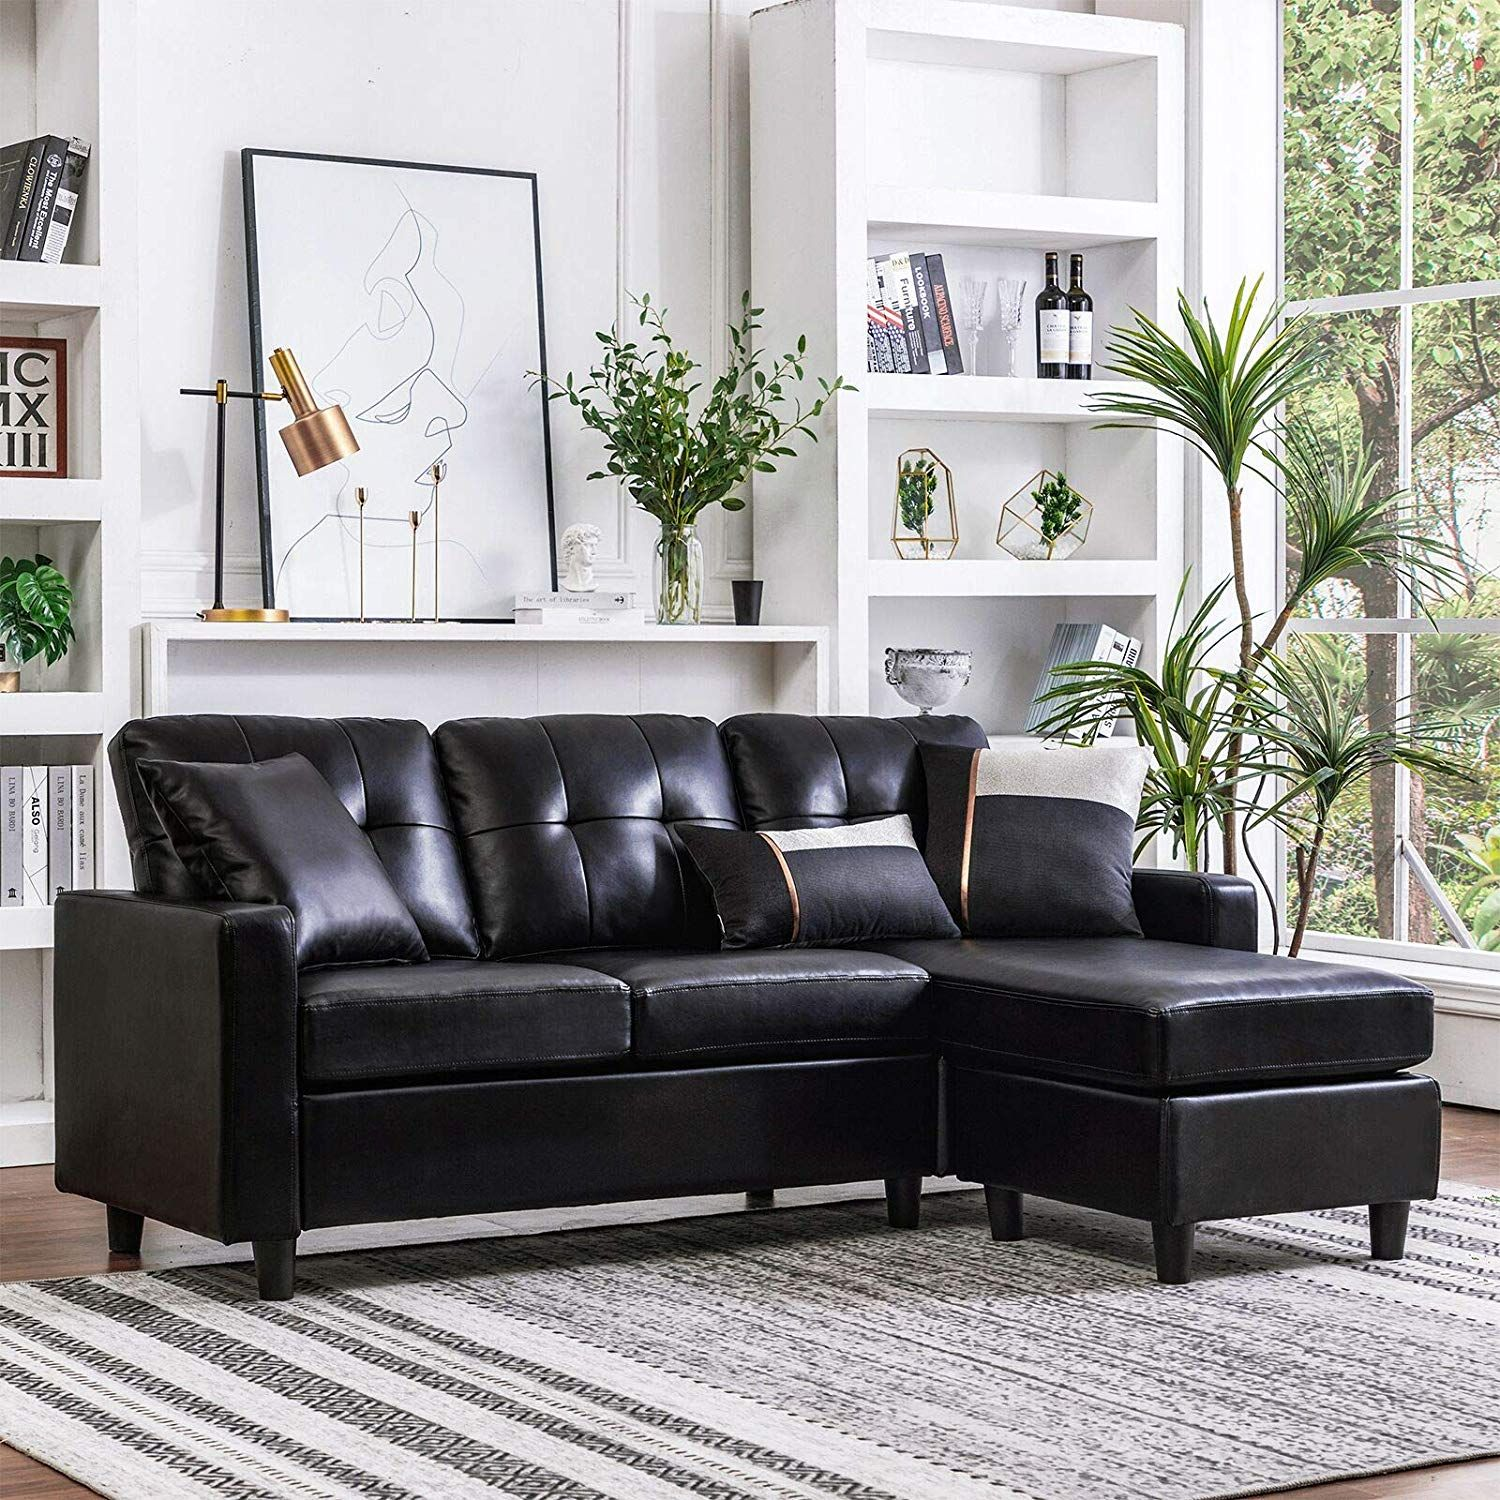 The 5 Best Cheap Sectional Couches In 2020 Small Space Sectional Sofa Faux Leather Sectional Black Sectional Living Room